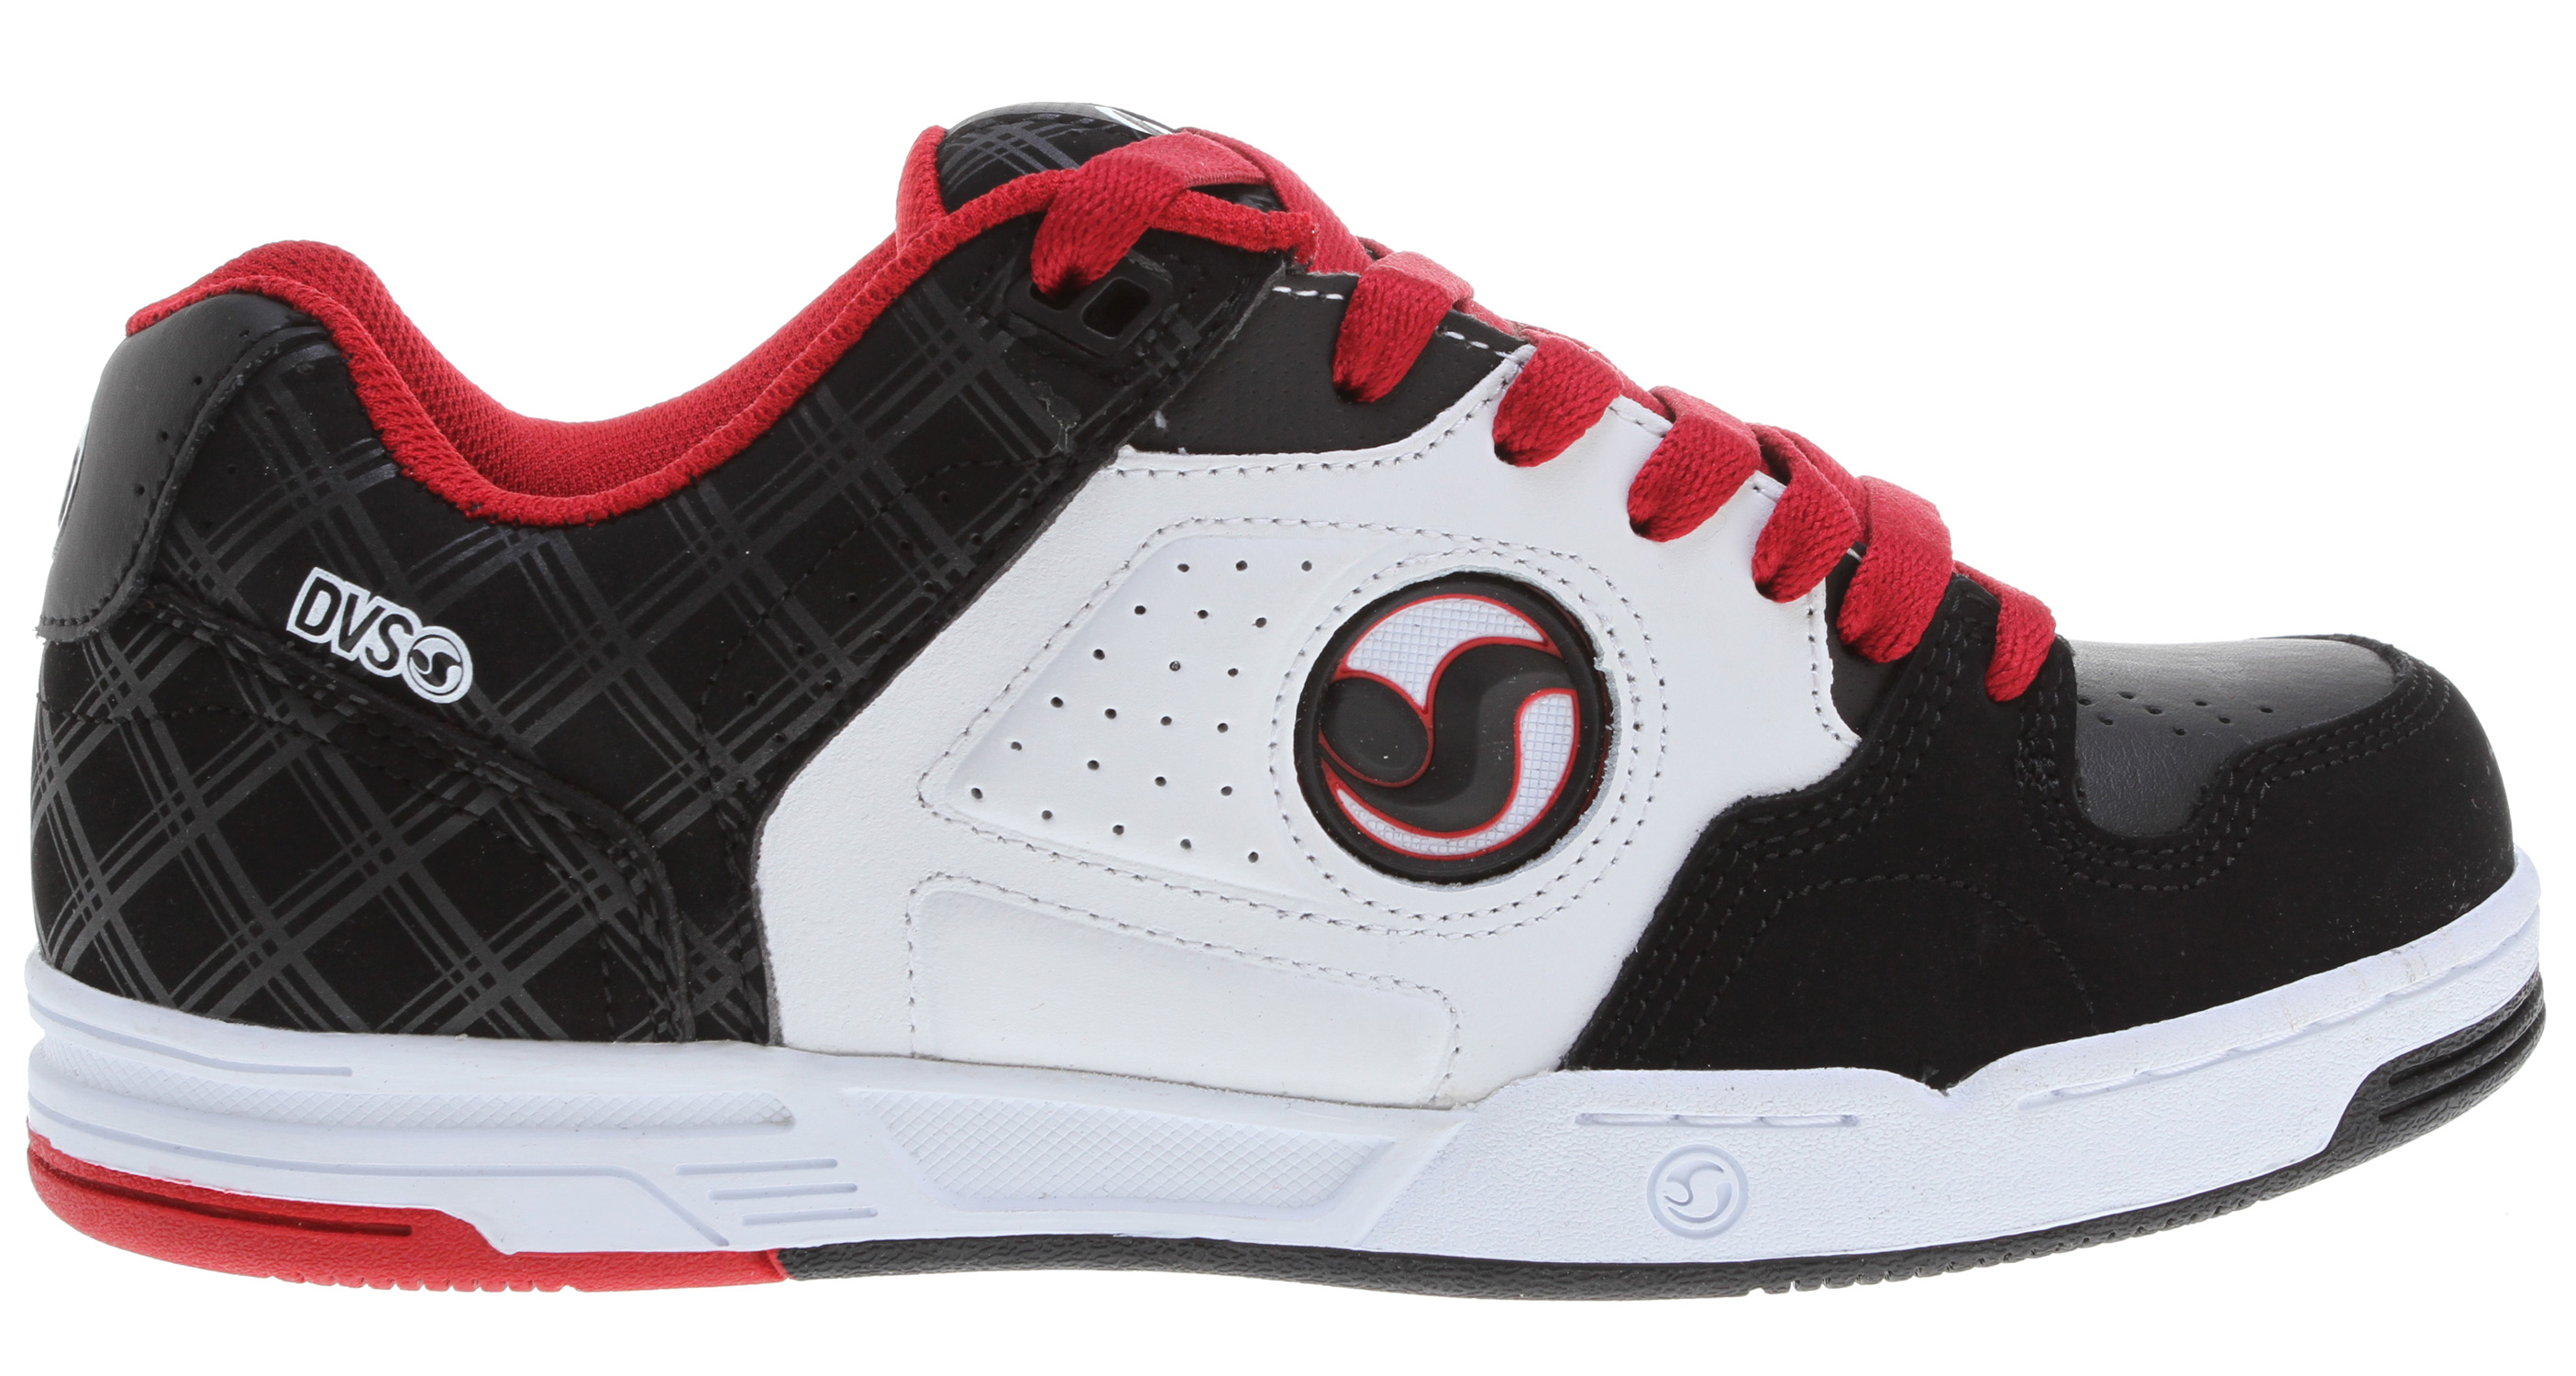 Skateboard Key Features of the DVS Havoc Skate Shoes: Leather/Nubuck/Suede upper material Ventilated mesh panels for breathability High density collar & tongue padding Direct injected TPR quarter logo detail High impact insole & midsole unit Durable cupsole construction - $52.95